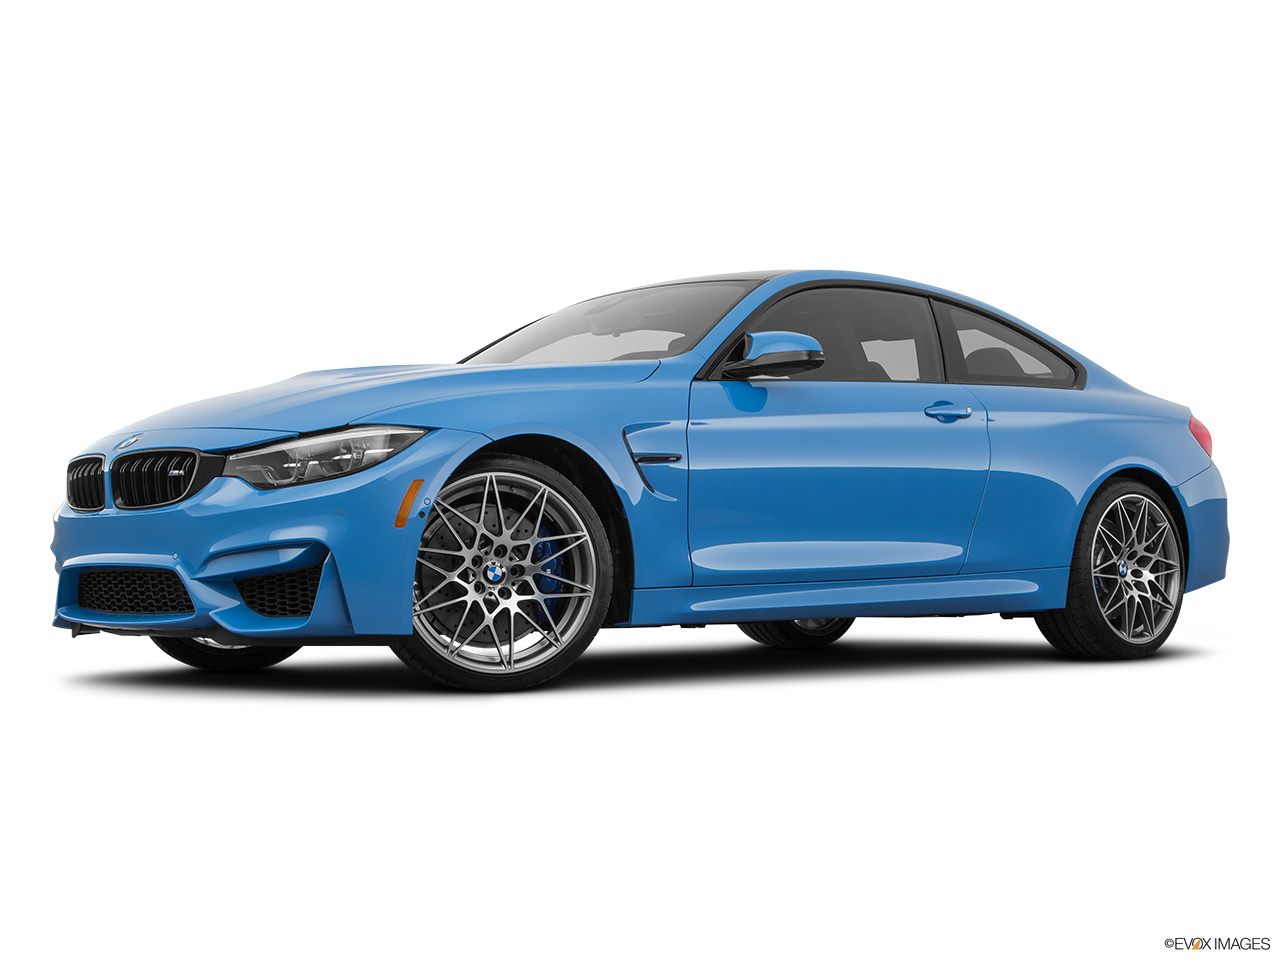 BMW M4 Coupe 2018 3.0T In UAE: New Car Prices, Specs